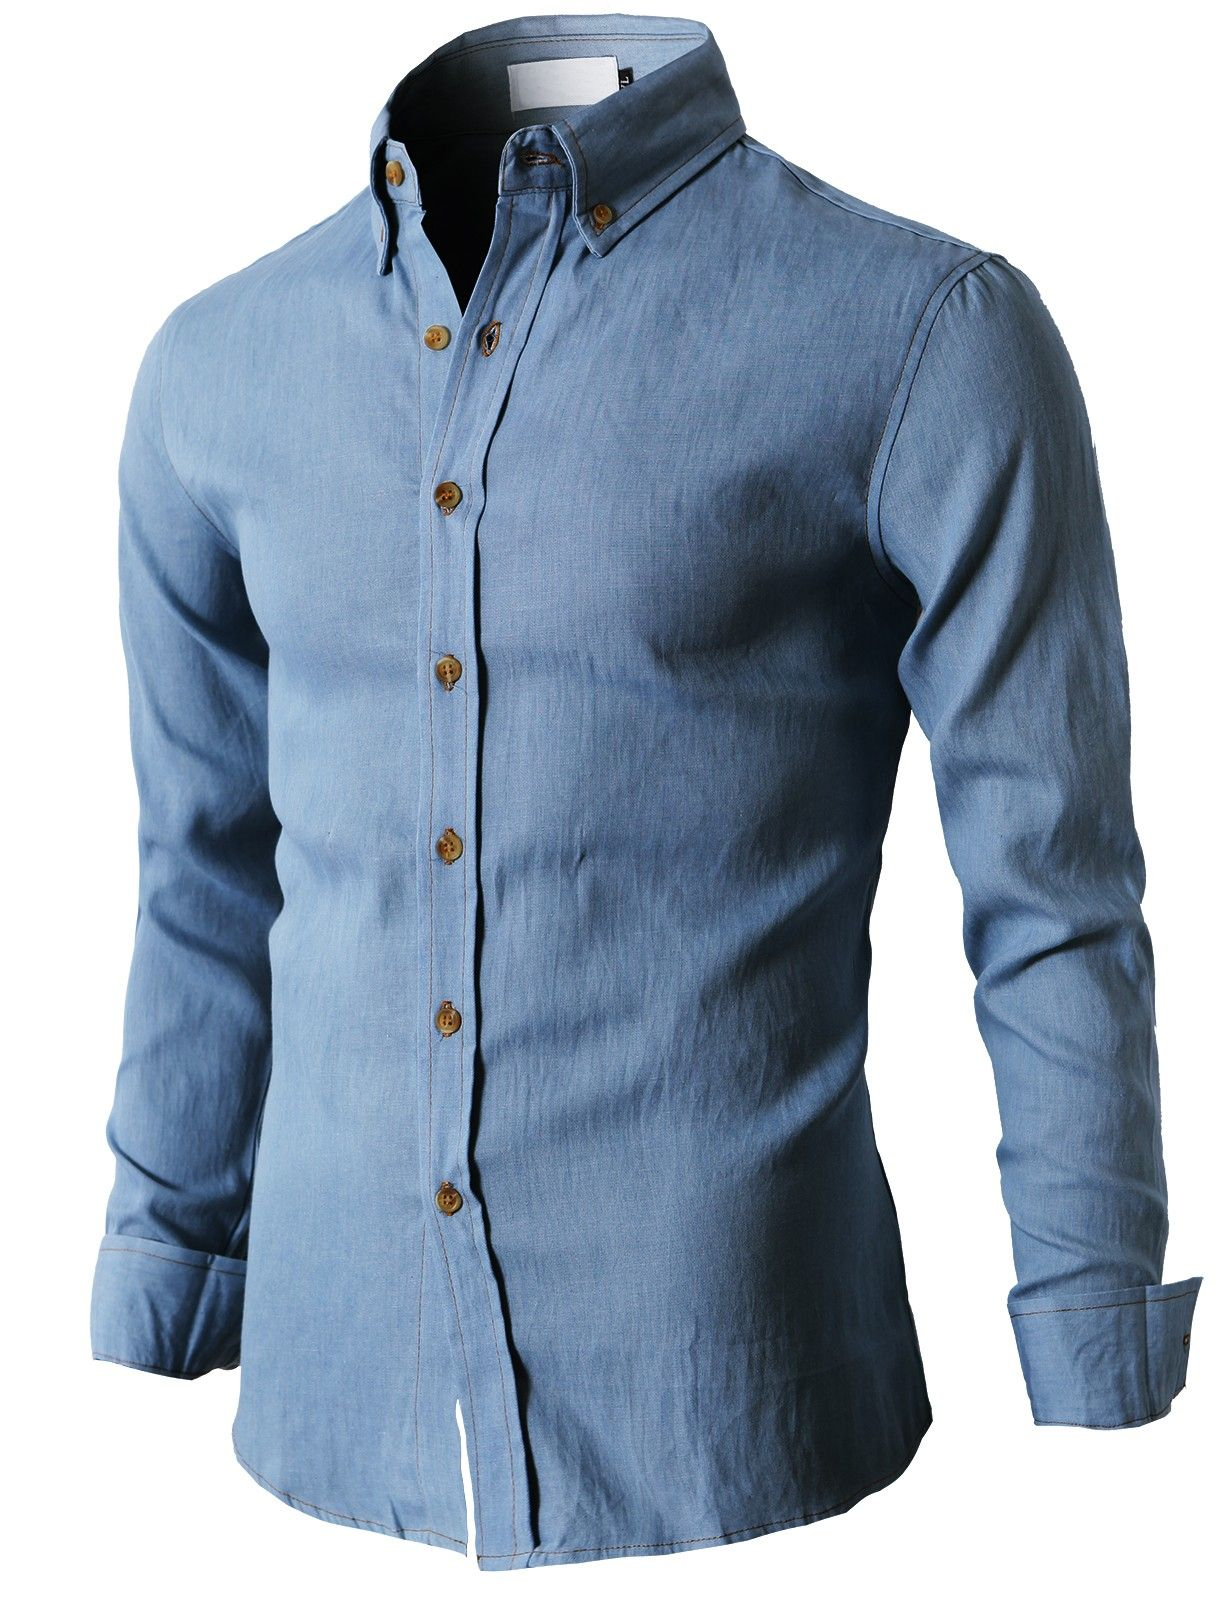 Mens Classic Washing Denim Shirt With Button Details On Collar ...